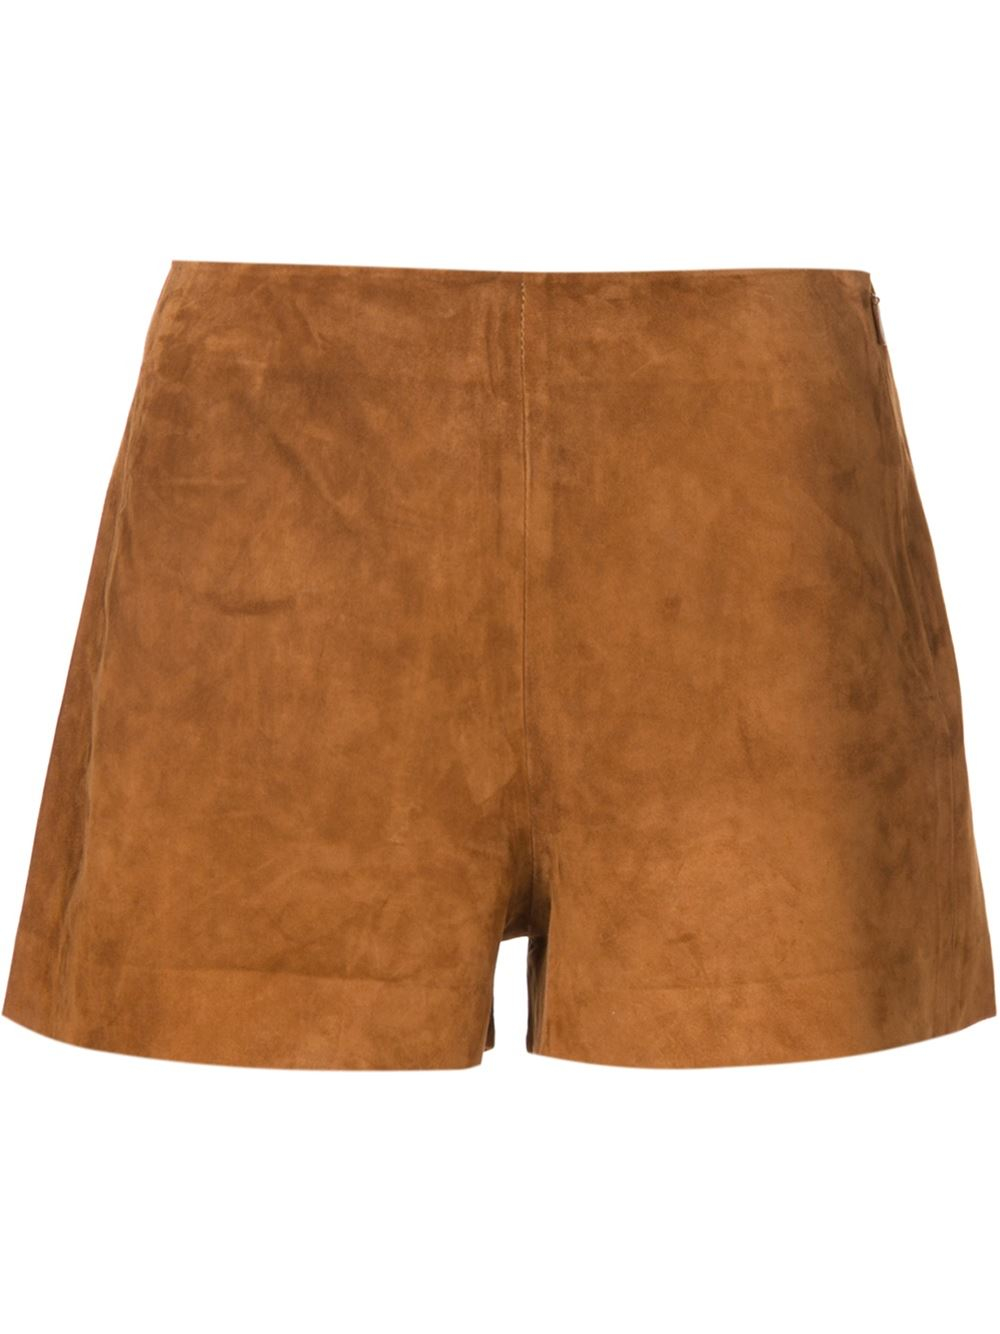 Buy the latest brown shorts cheap shop fashion style with free shipping, and check out our daily updated new arrival brown shorts at learn-islam.gq